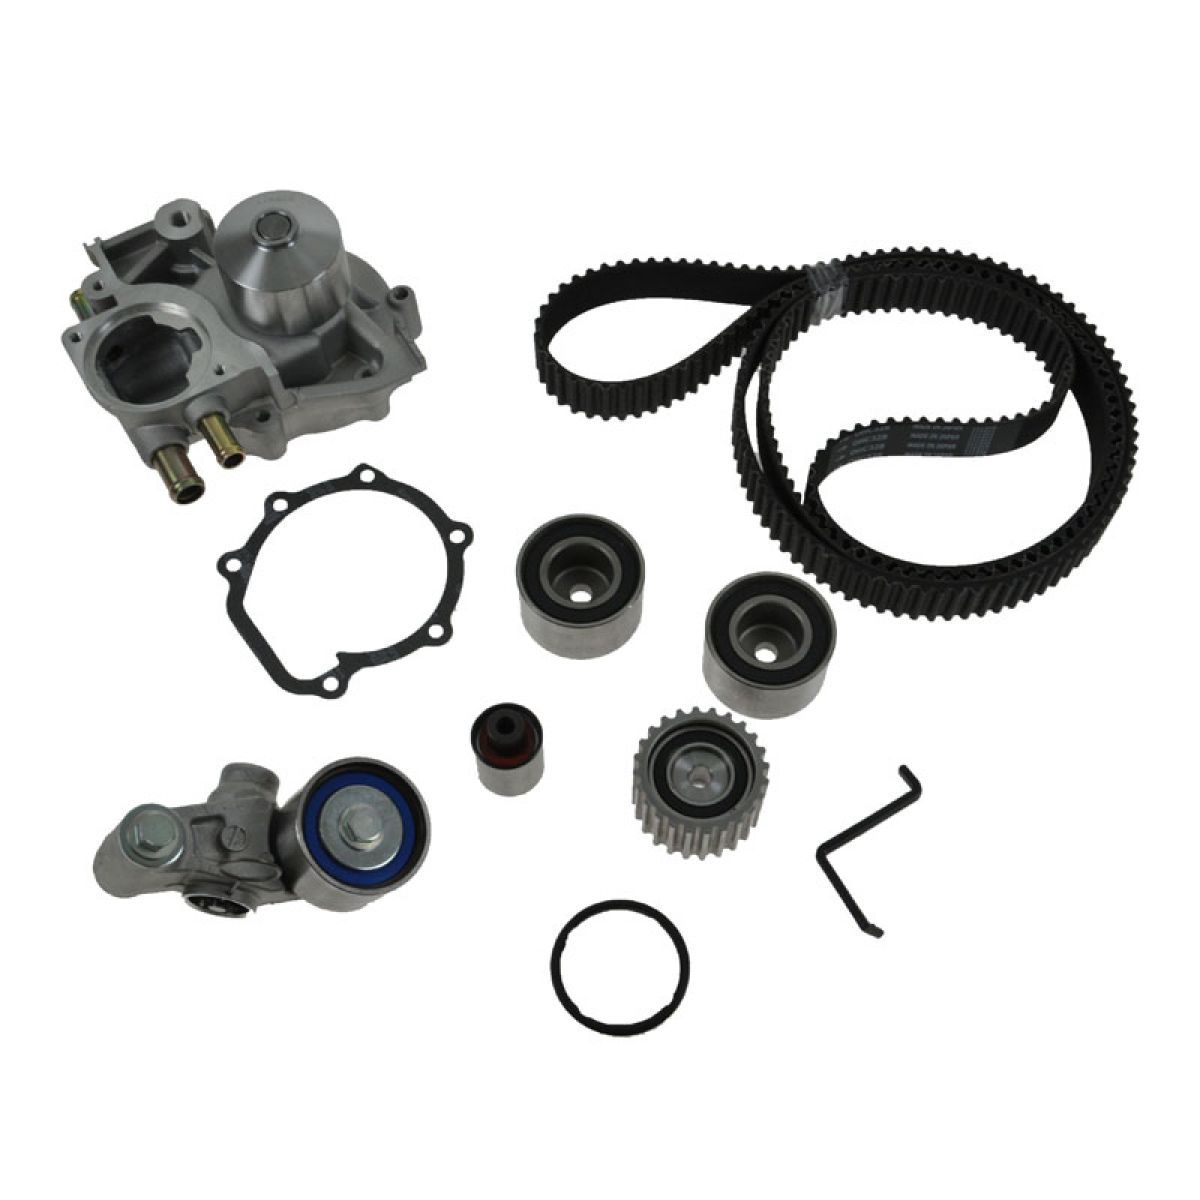 hight resolution of gates timing belt w water pump kit for subaru legacy impreza forester turbo